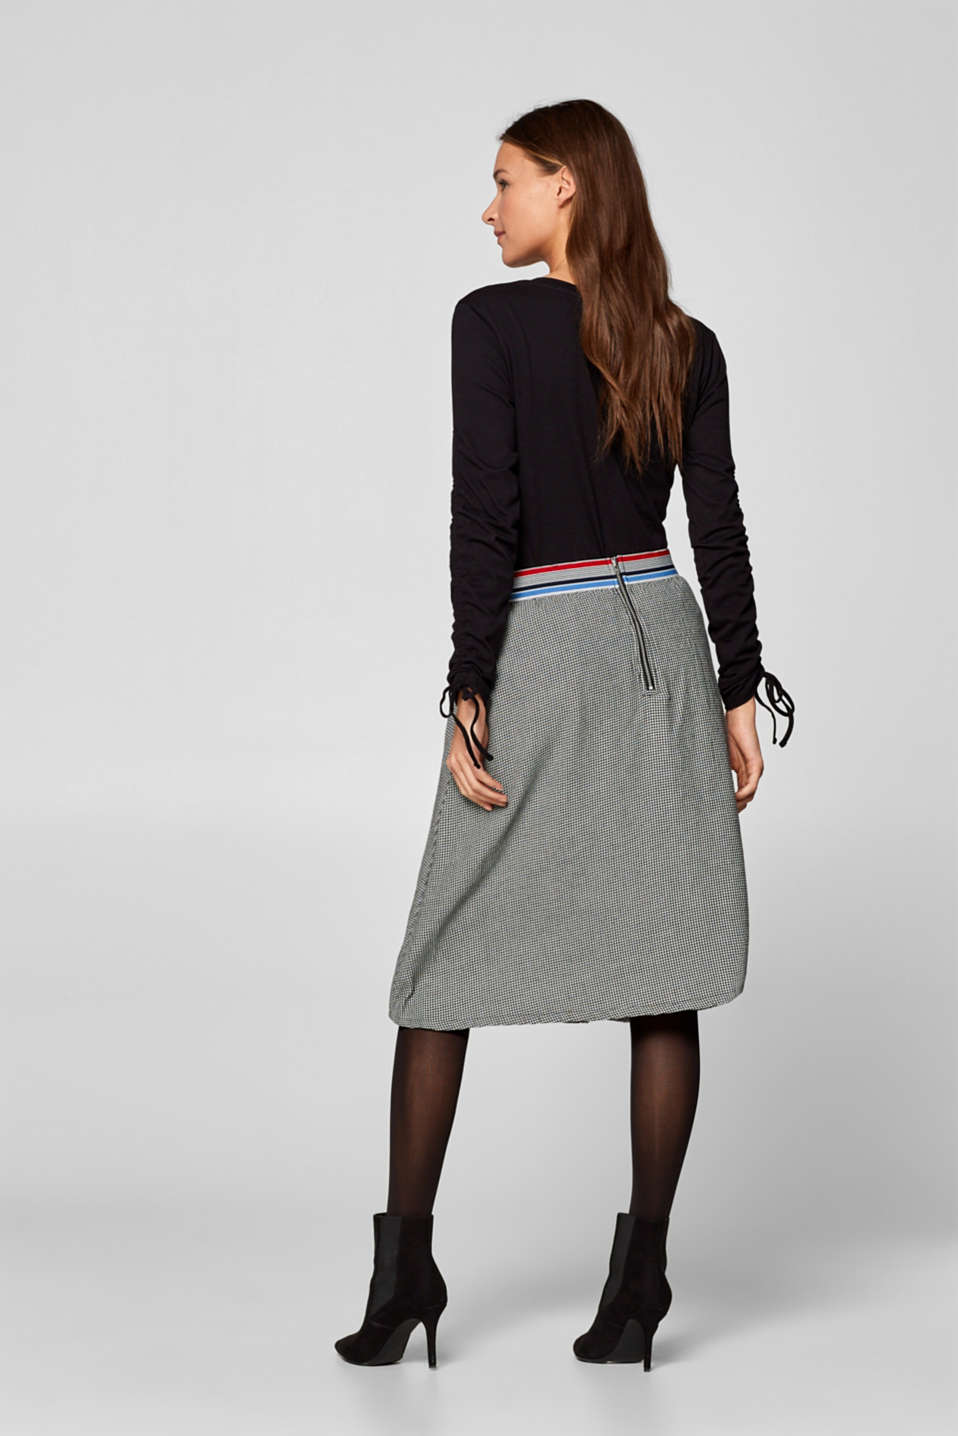 Esprit - Houndstooth skirt with elasticated waistband, 100% cotton